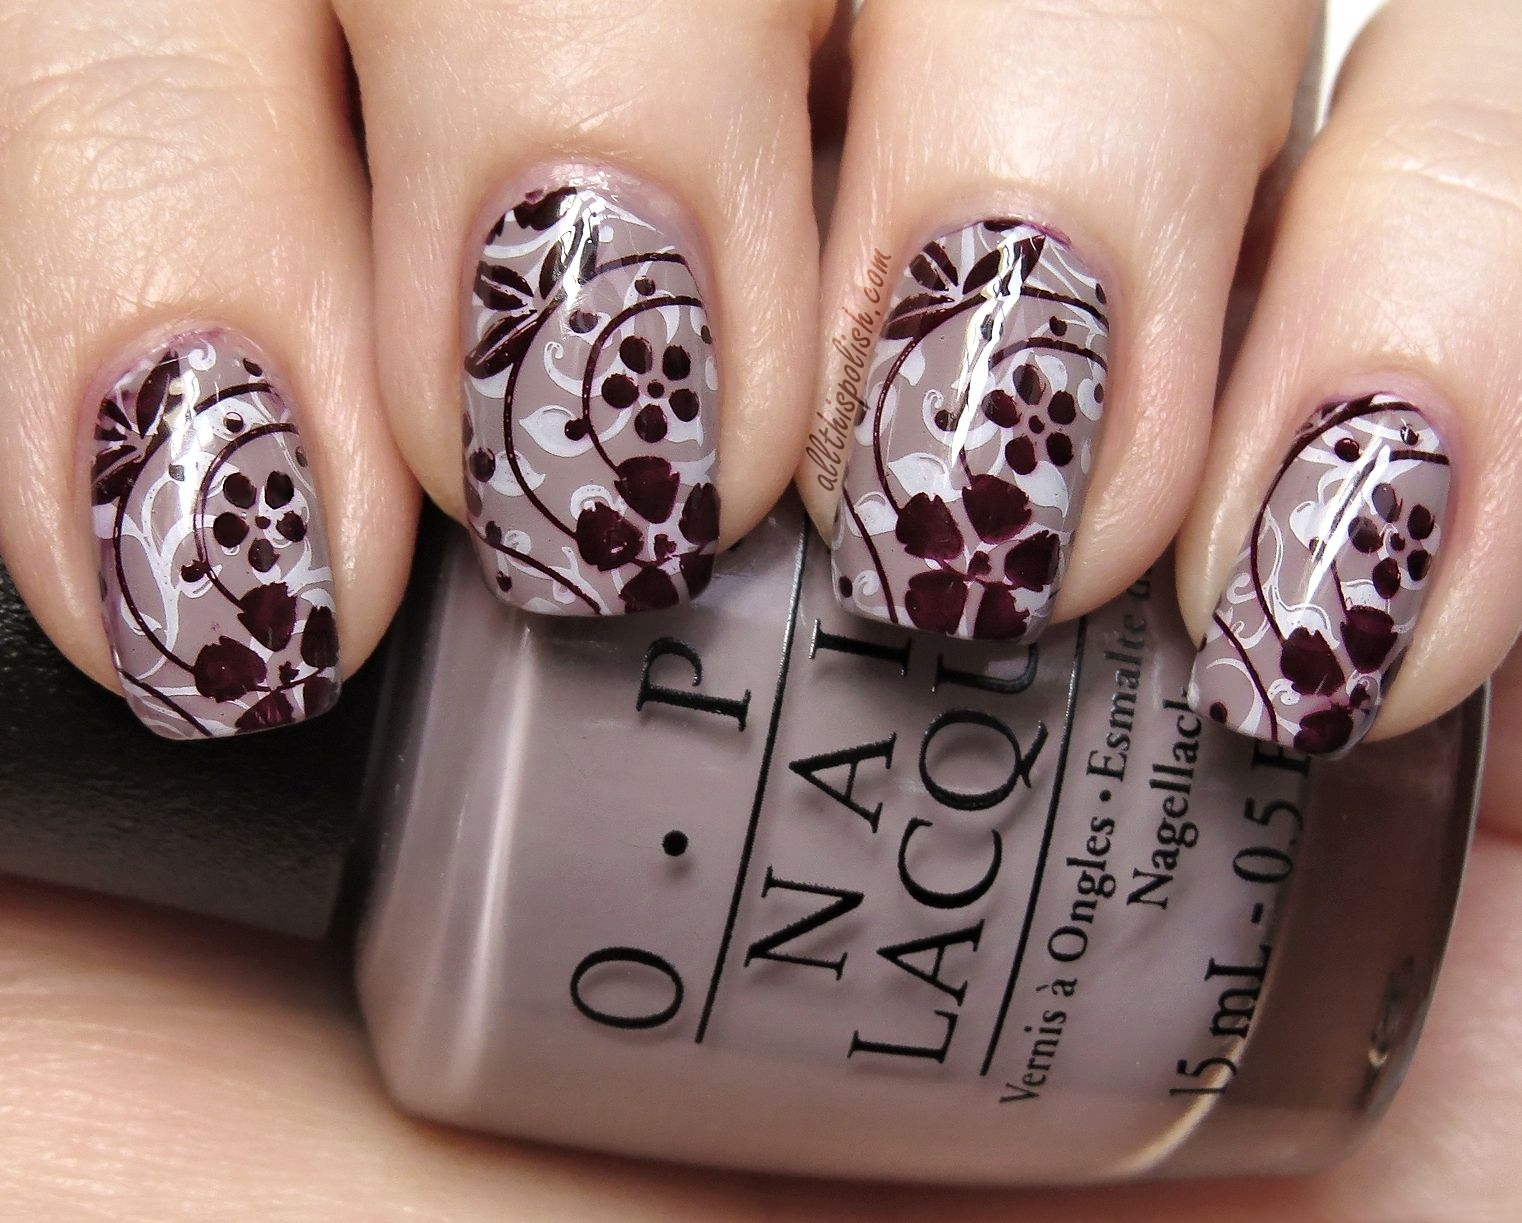 All This Polish: OPI Taupe-less Beach and Floral Double Stamping